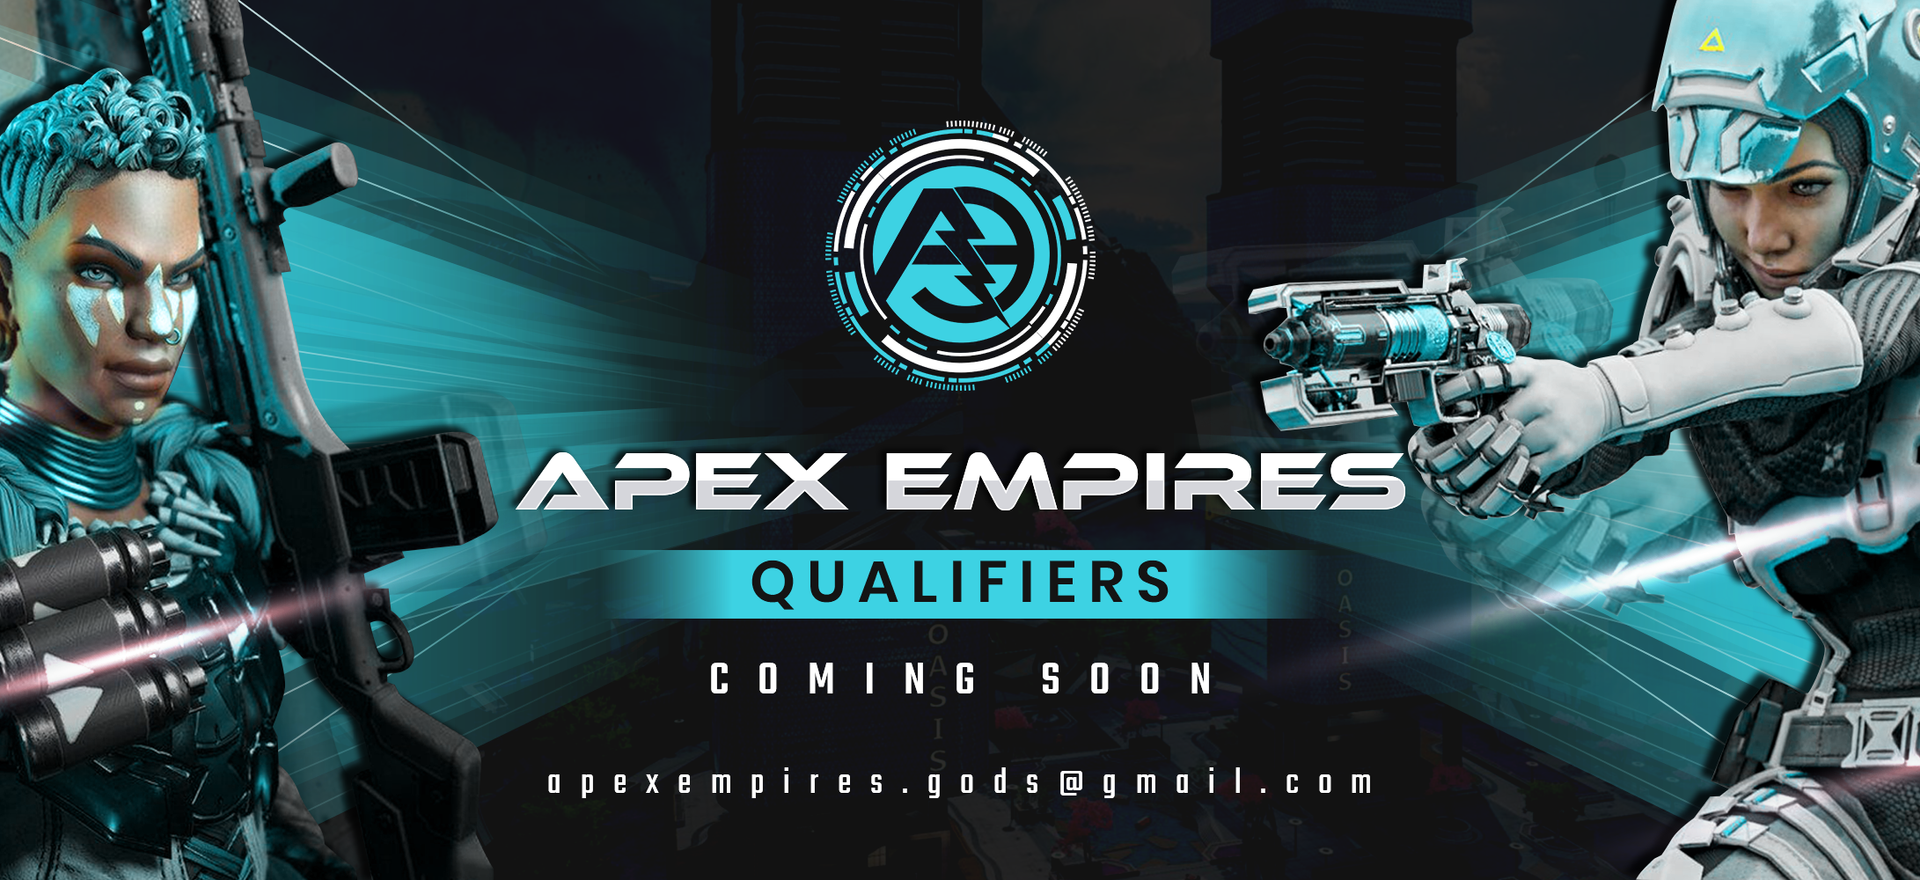 HD 4k Qualifiers Coming Soon.png